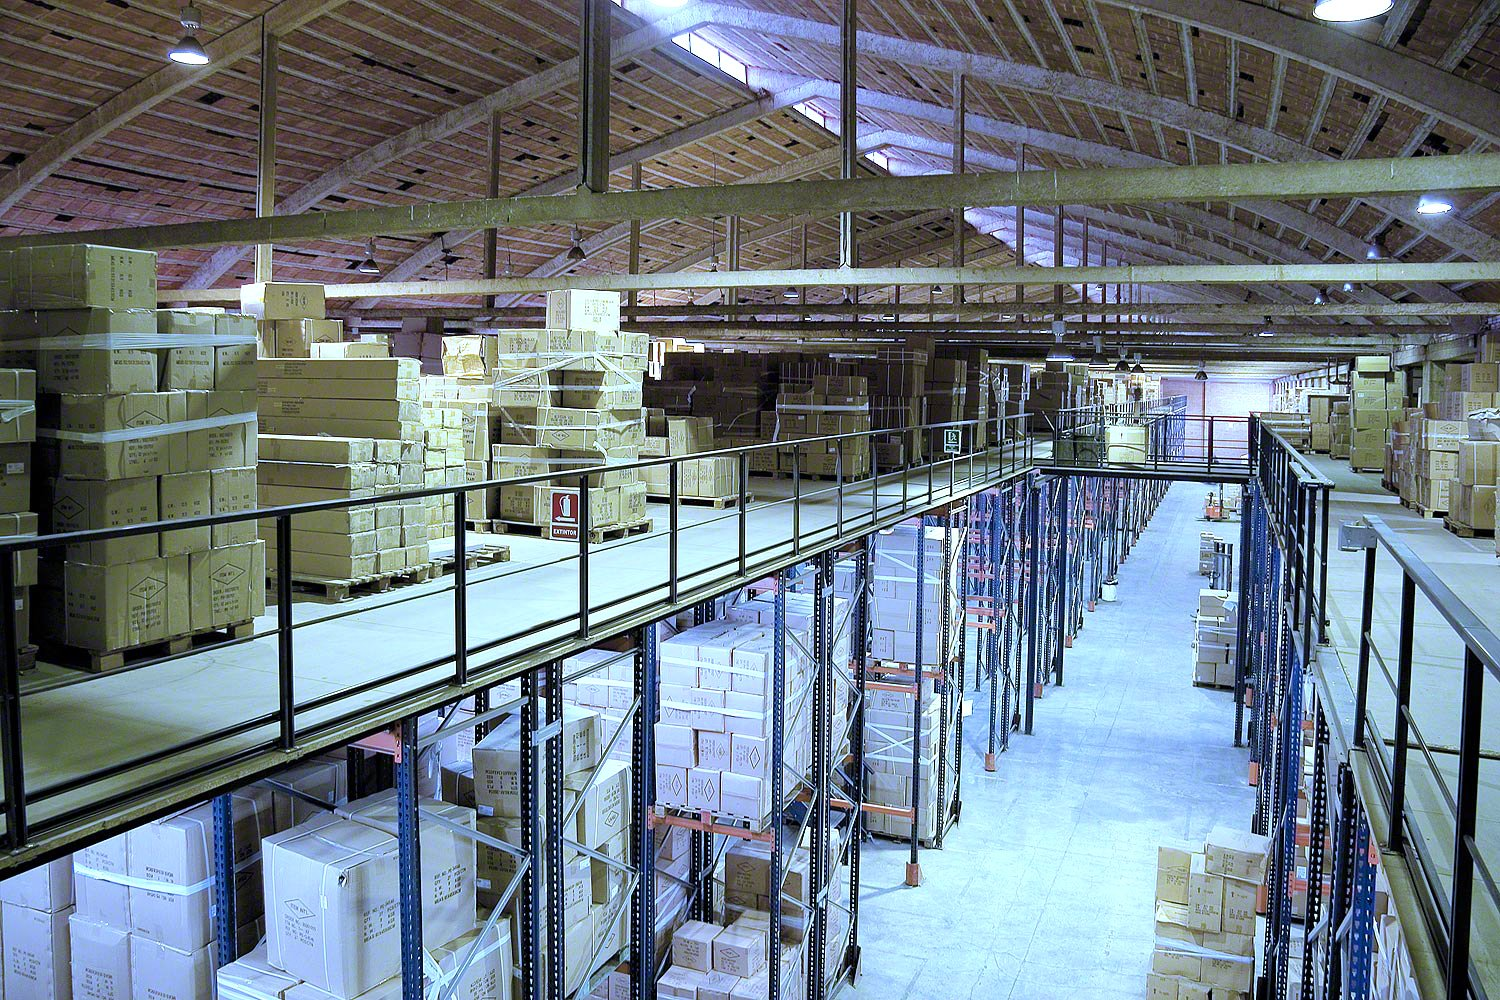 Mezzanine installation above pallet racking with catwalk connecting to mezzanine across the aisle. Palleted packages are stored in the pallet racking as well as on the raised mezzanine floor.